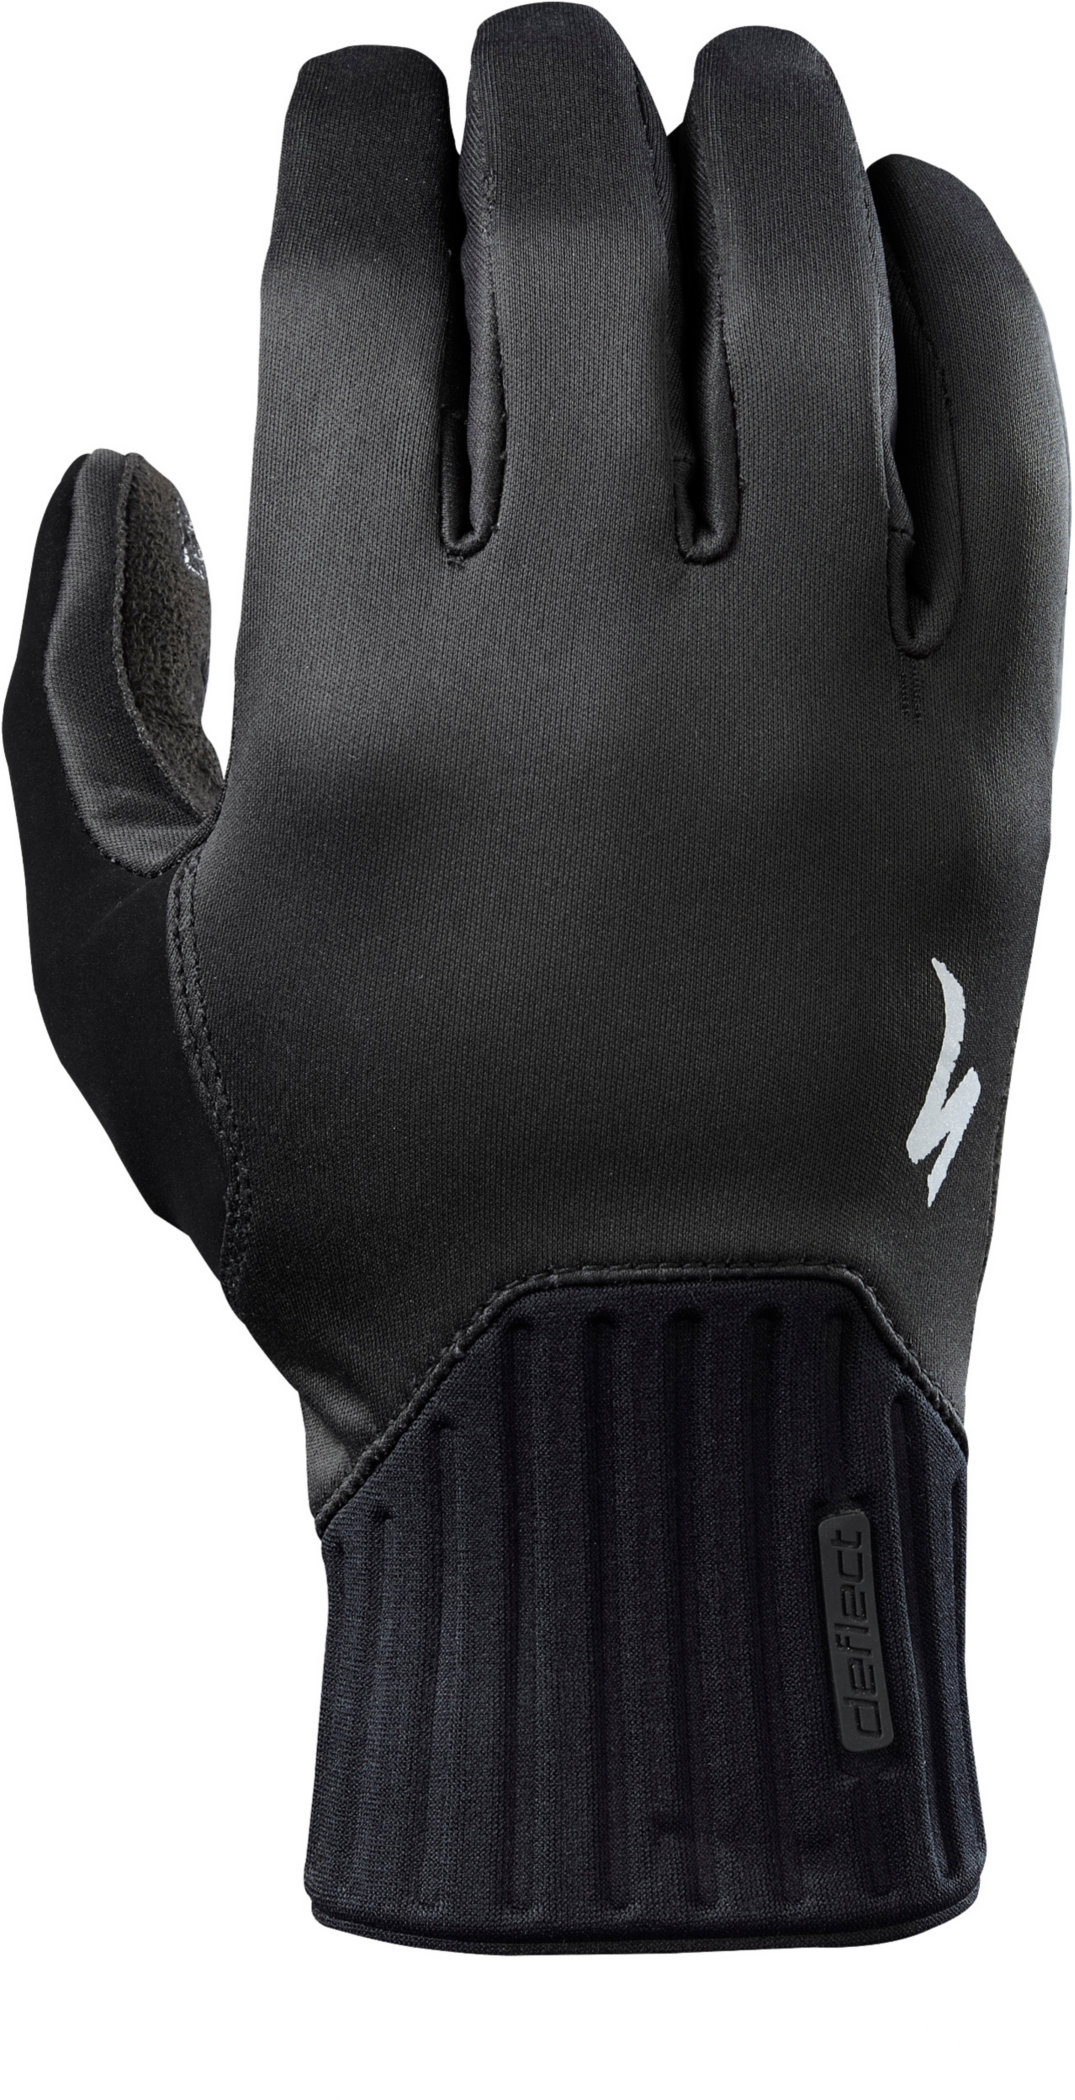 Specialized Deflect Gloves Black X-Large - Alpha Bikes